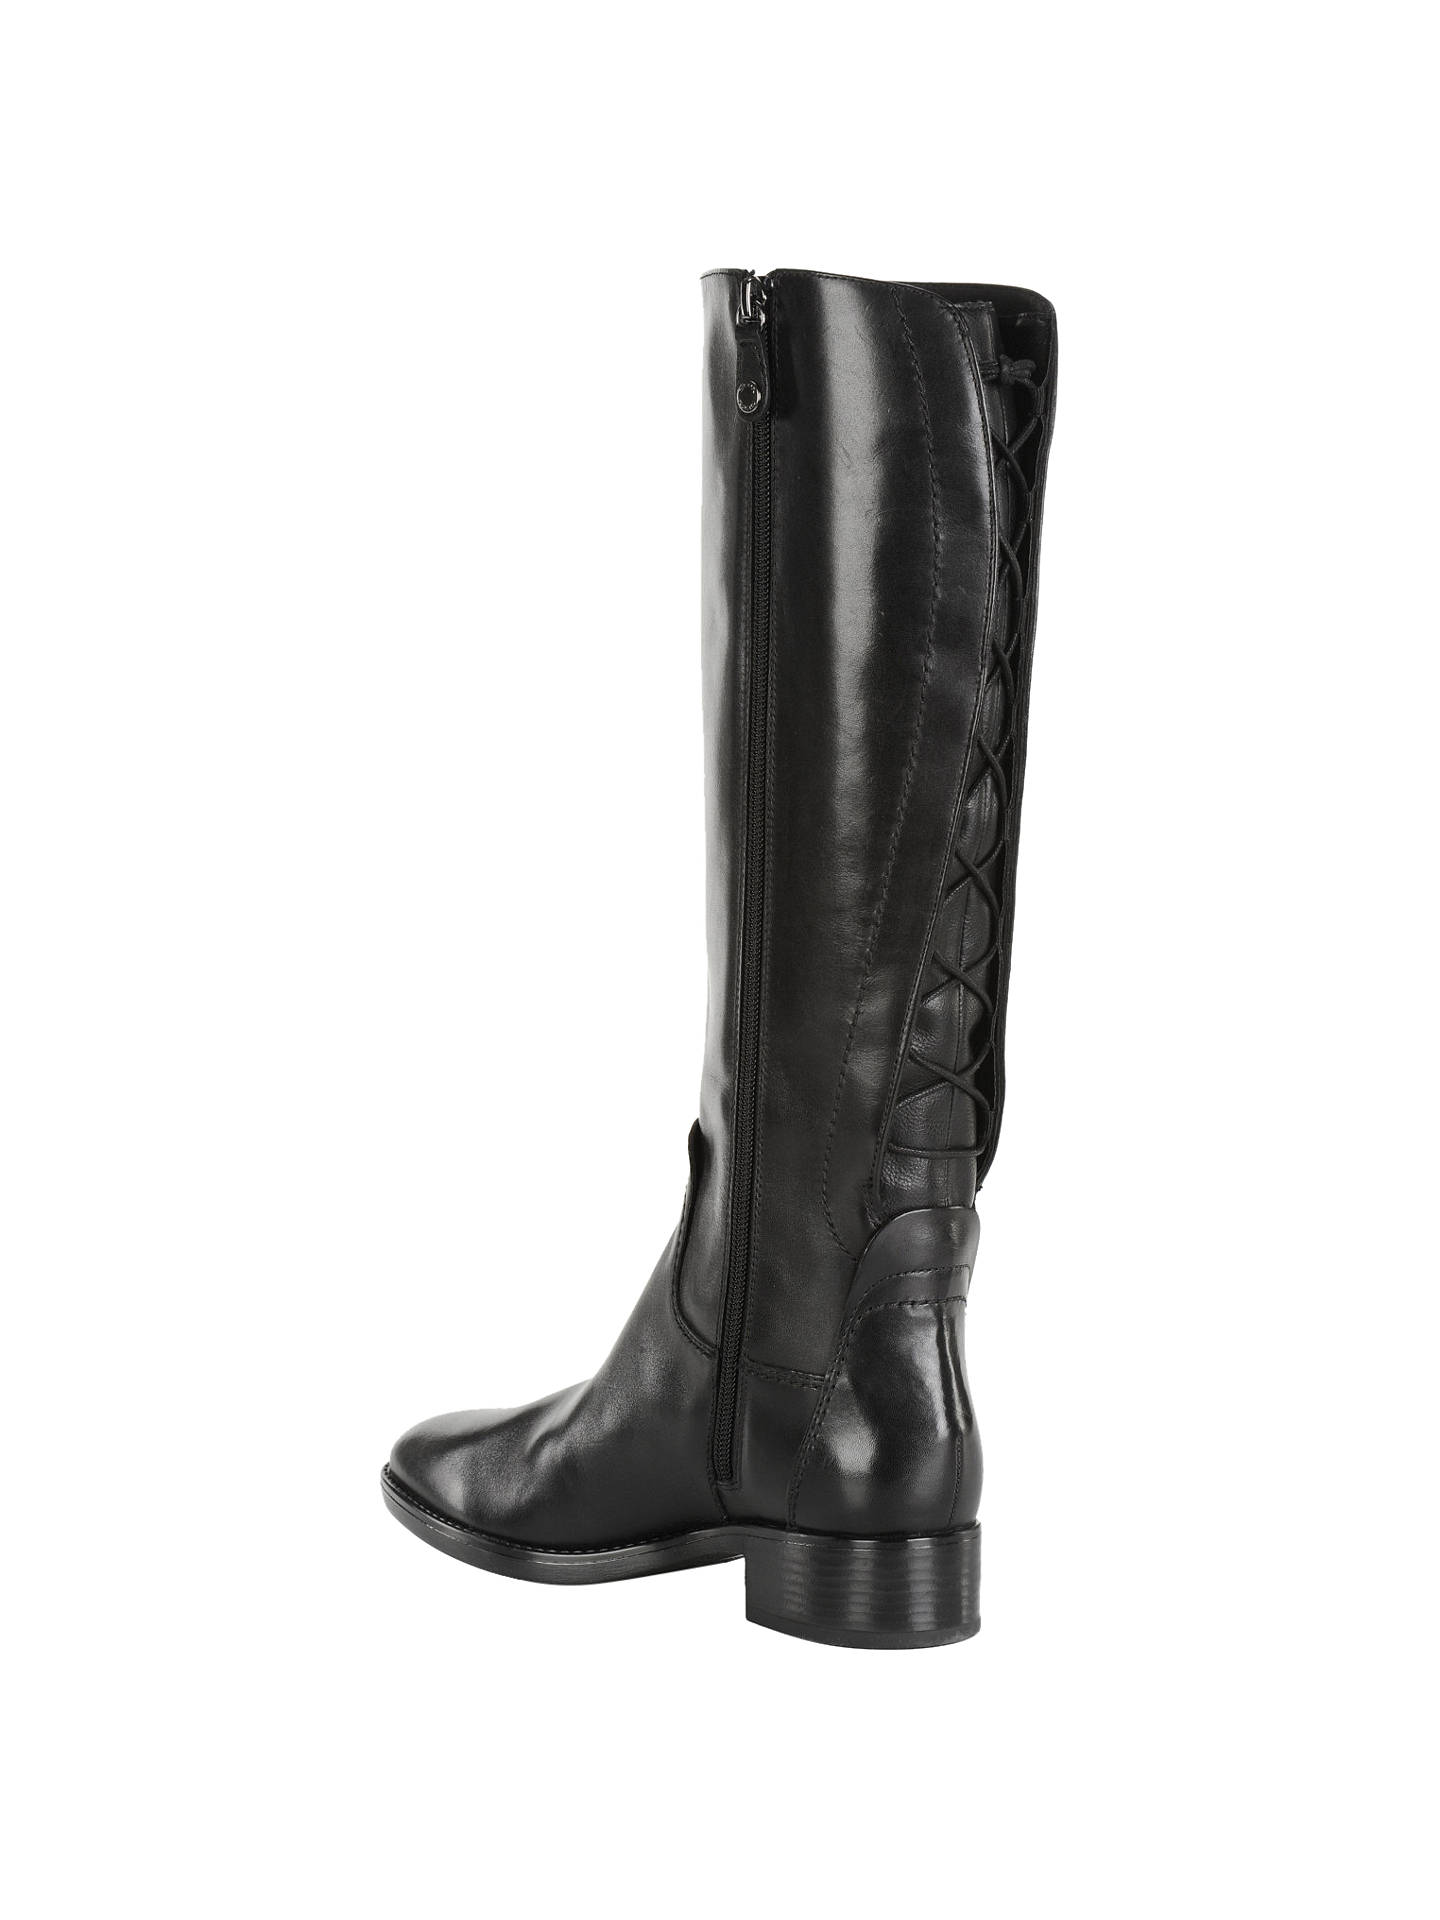 fb52357611c Geox Felicity Knee High Boots, Black at John Lewis & Partners